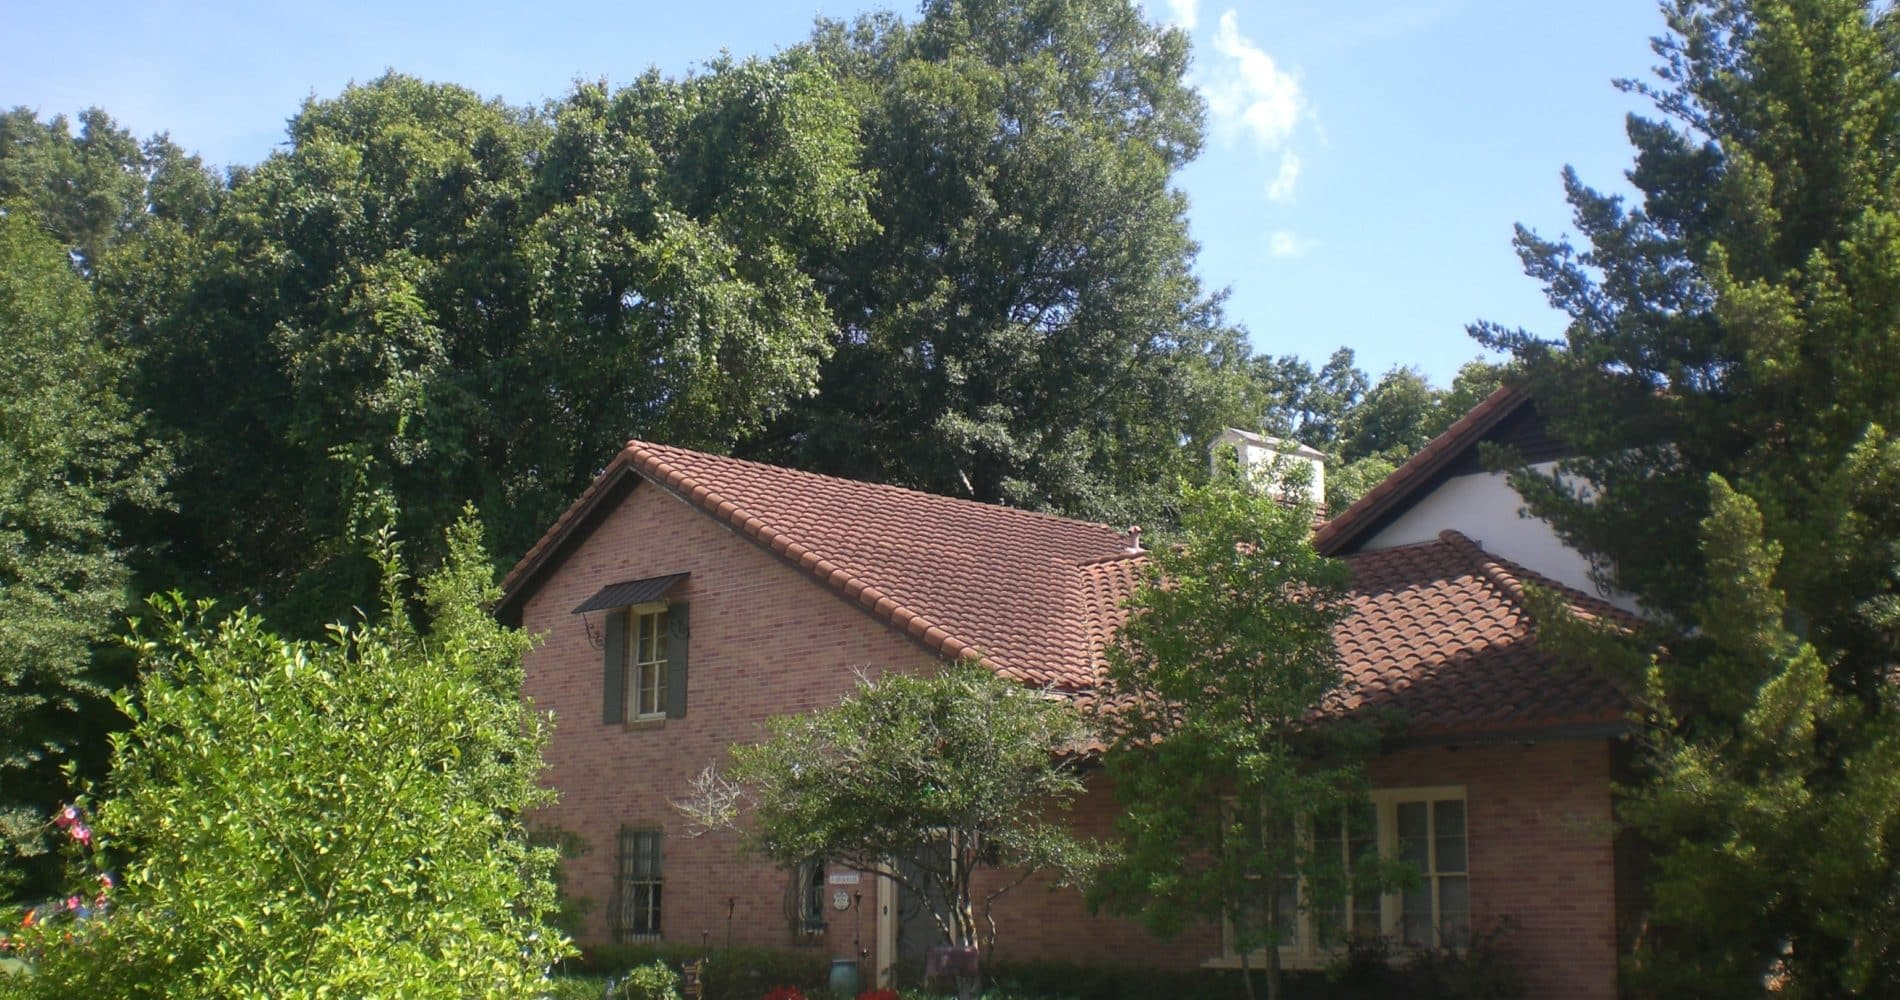 The Stockade exterior in summer